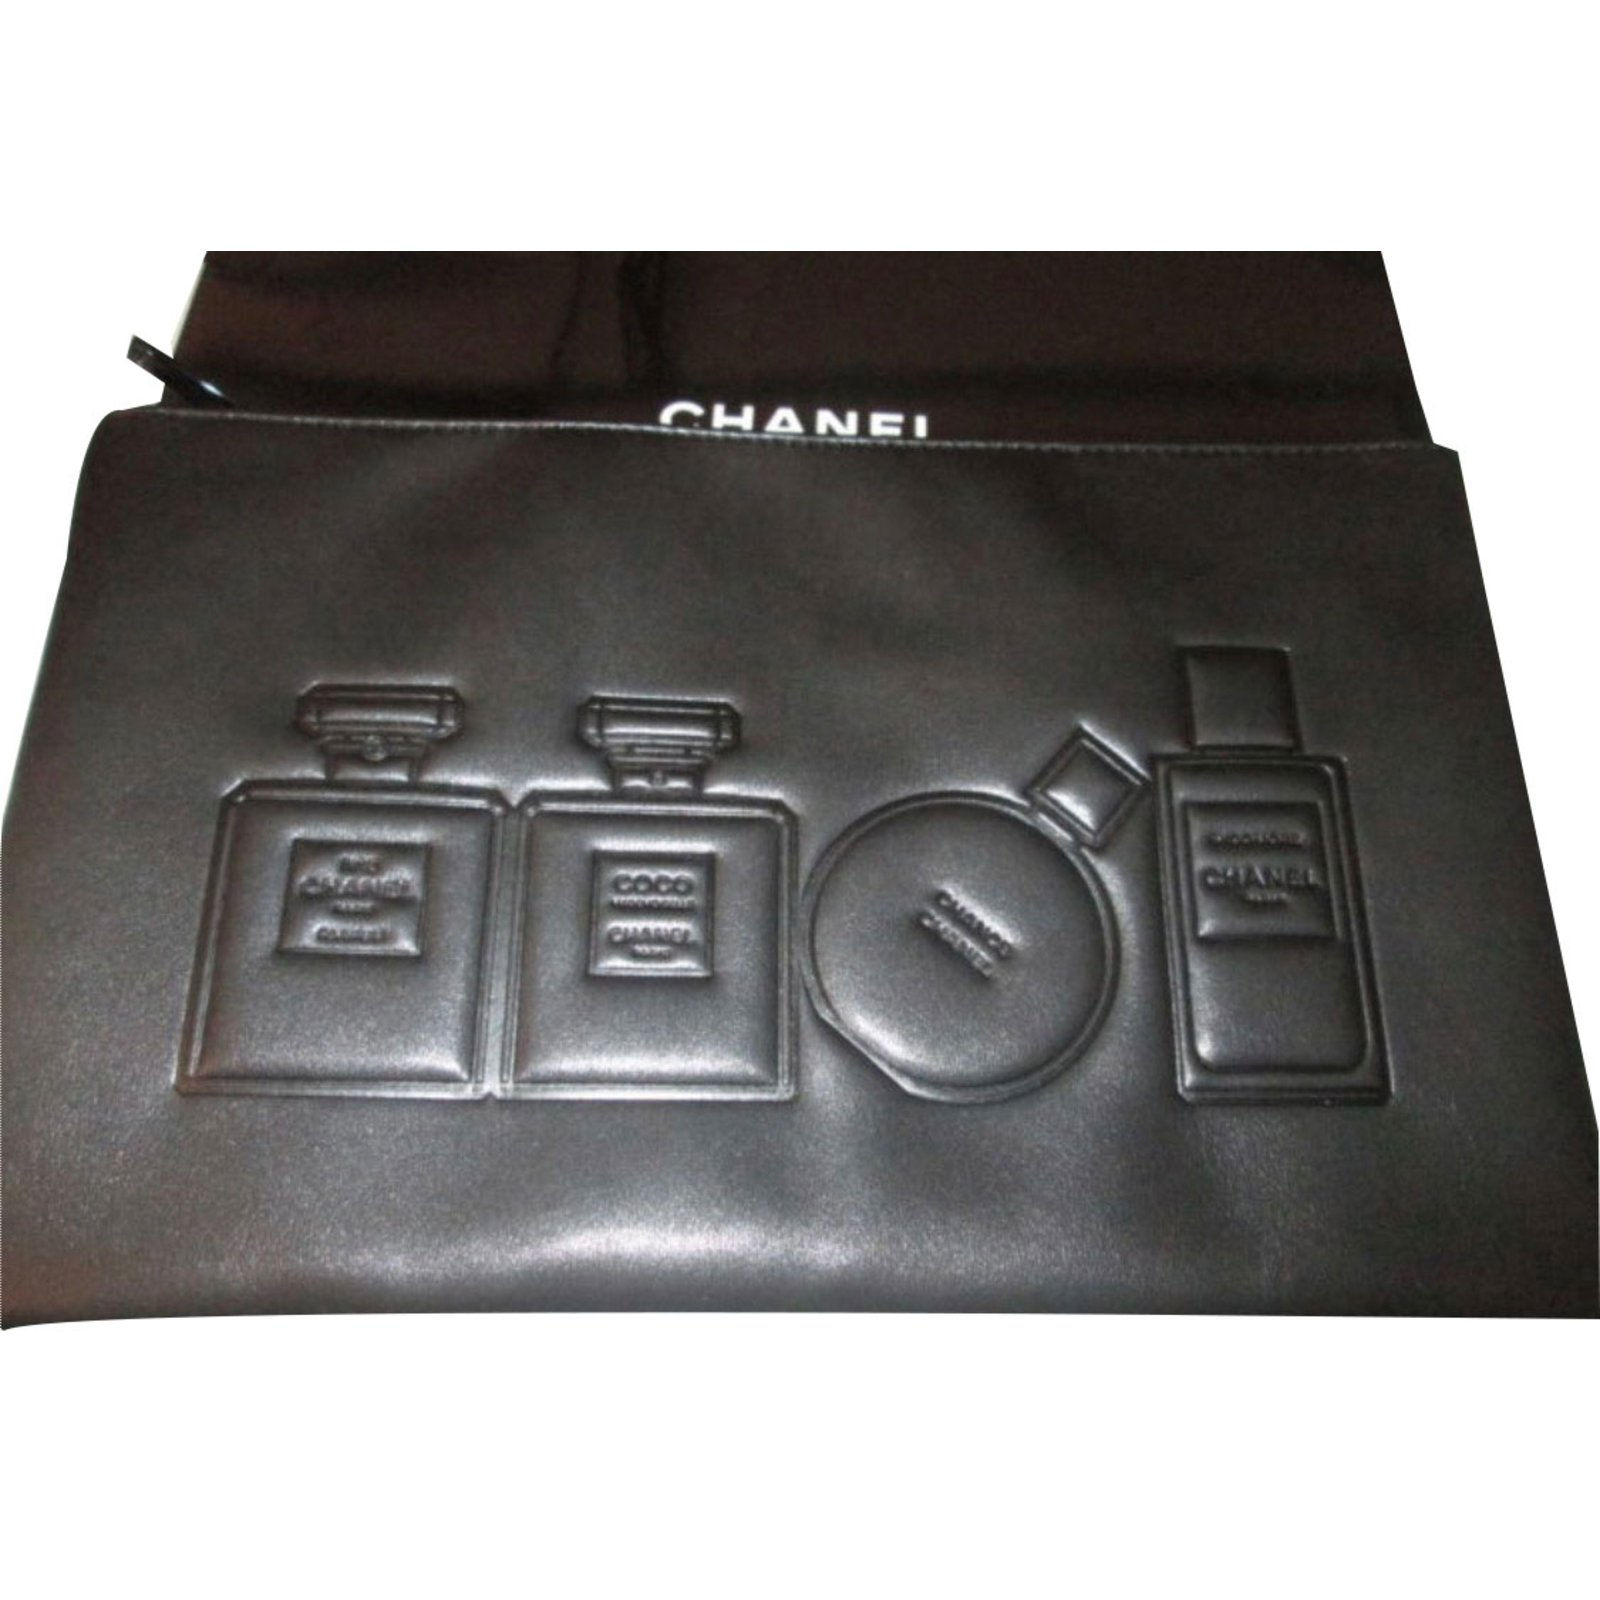 b1758521acf6 Chanel toiletry bag and makeup VIP gifts Other Black ref.30320 ...